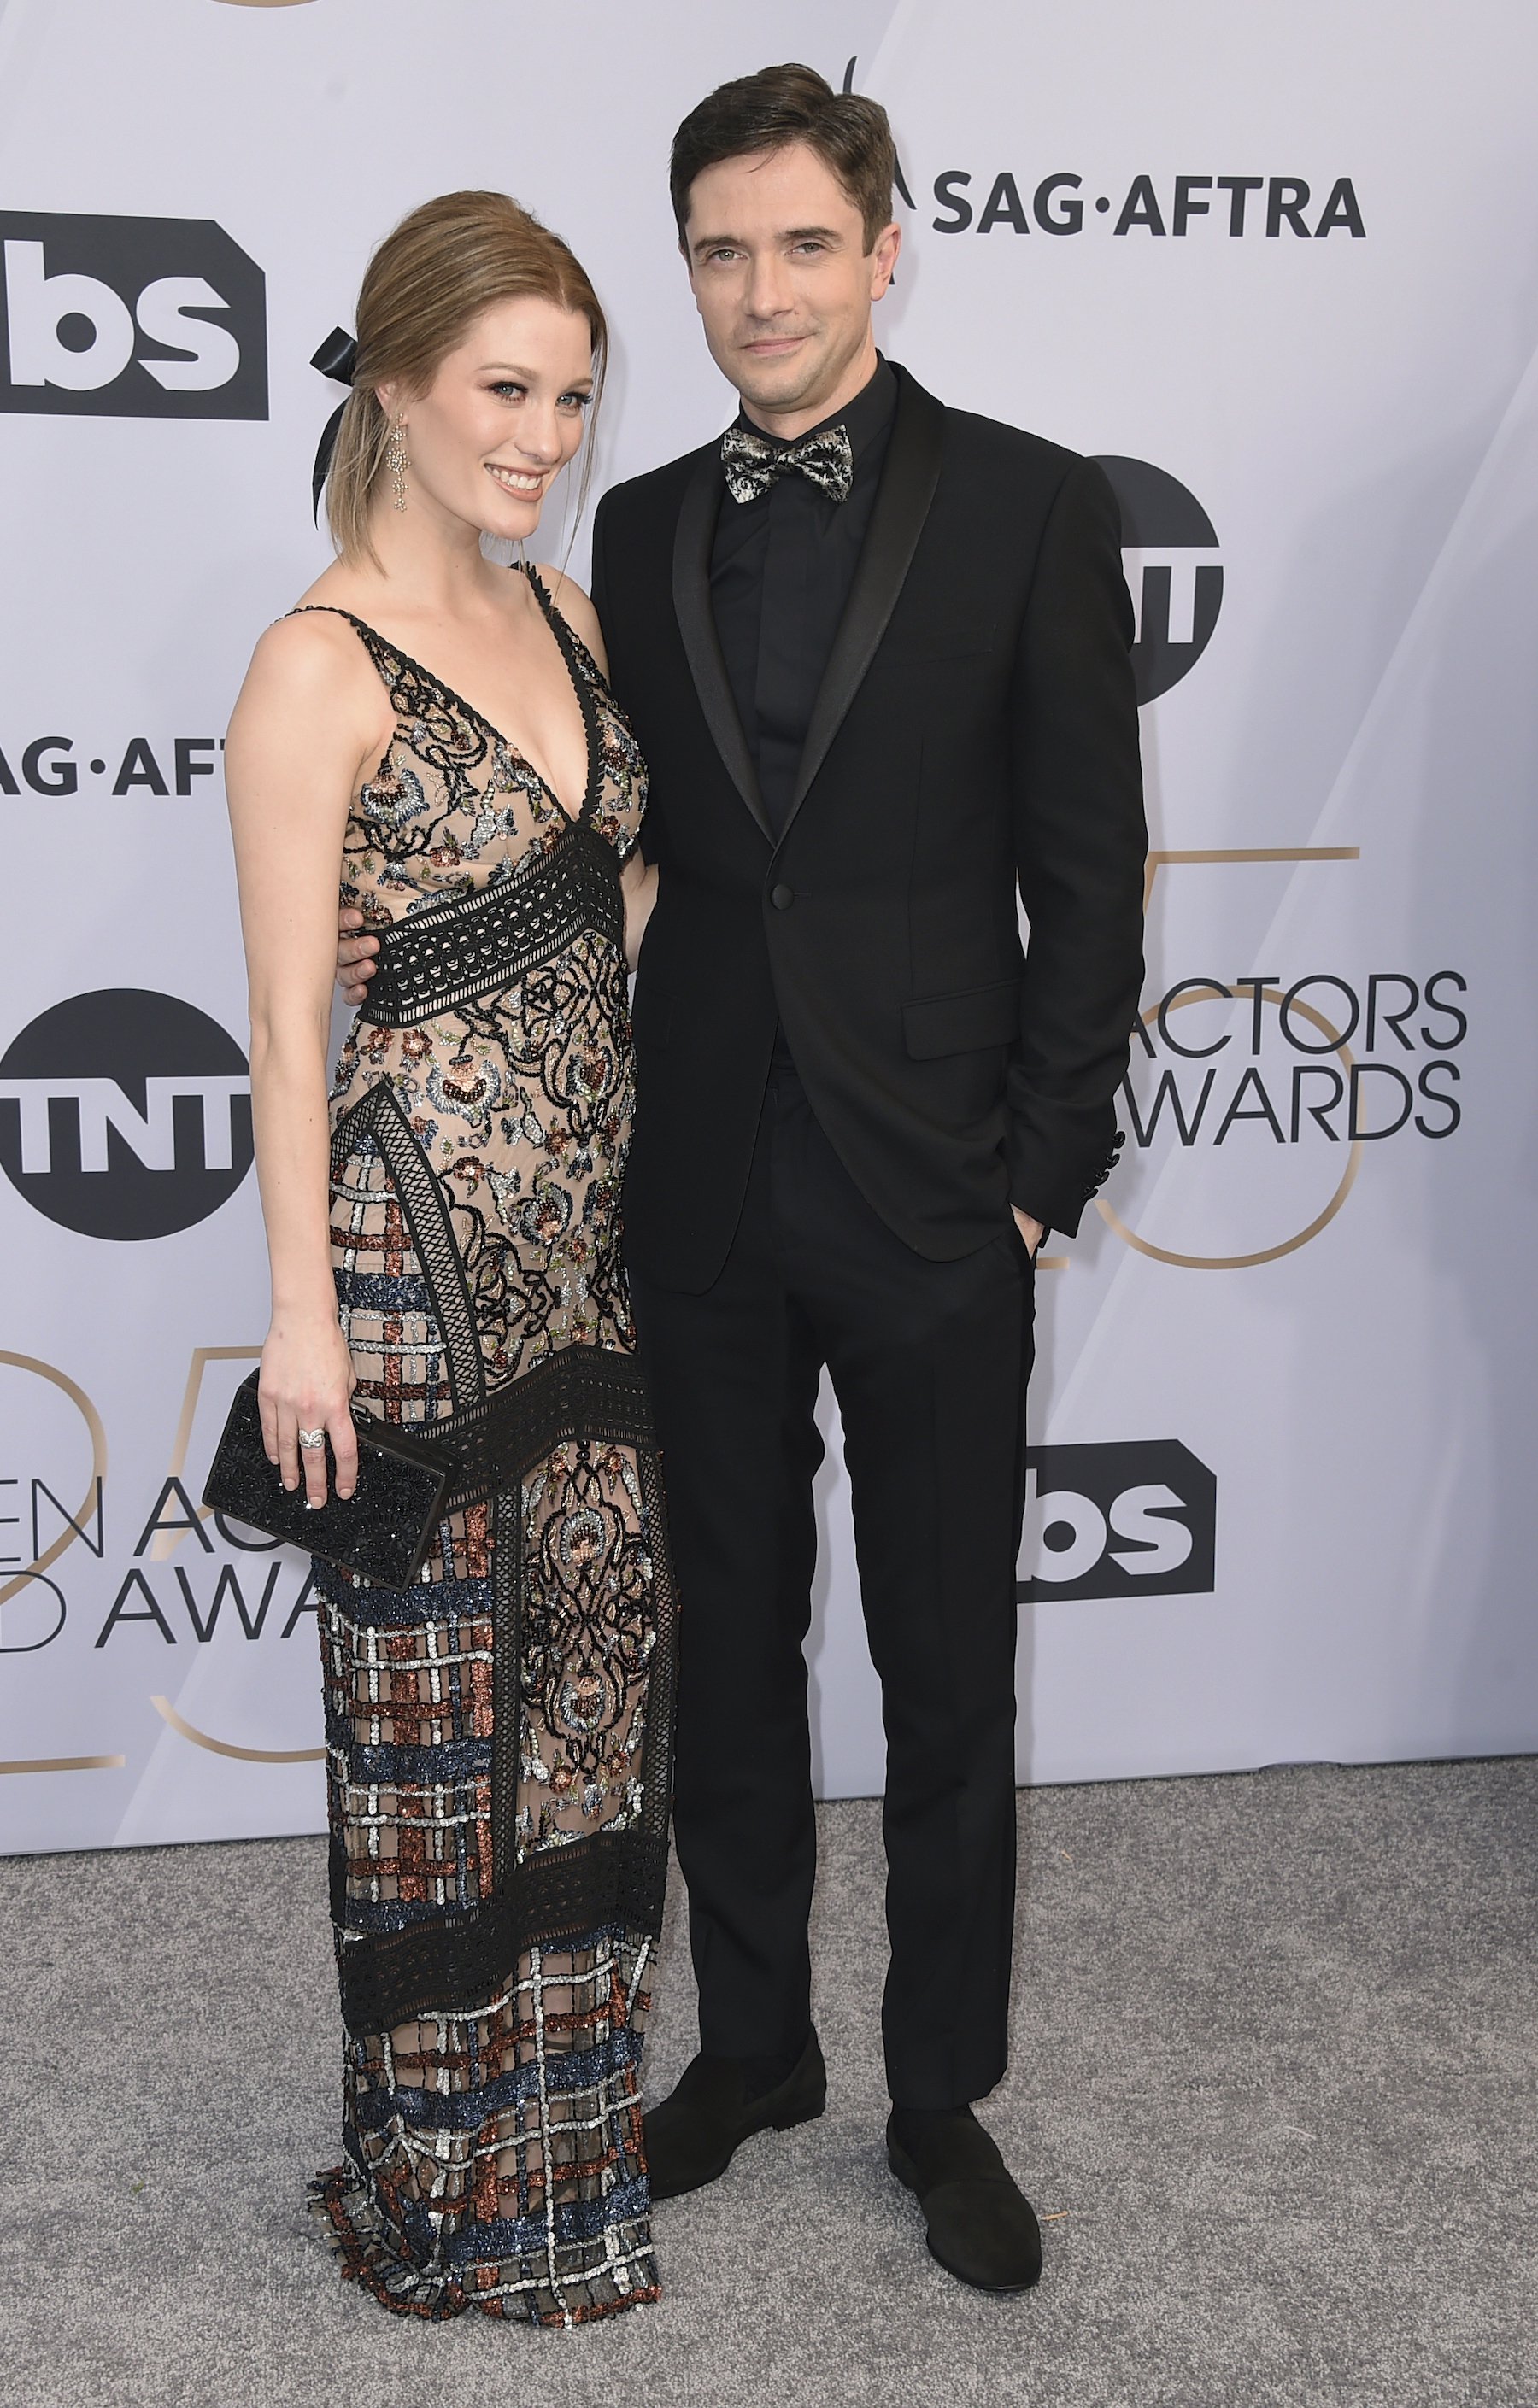 "<div class=""meta image-caption""><div class=""origin-logo origin-image ap""><span>AP</span></div><span class=""caption-text"">Ashley Hinshaw, left, and Topher Grace arrive at the 25th annual Screen Actors Guild Awards at the Shrine Auditorium & Expo Hall on Sunday, Jan. 27, 2019, in Los Angeles. (Jordan Strauss/Invision/AP)</span></div>"